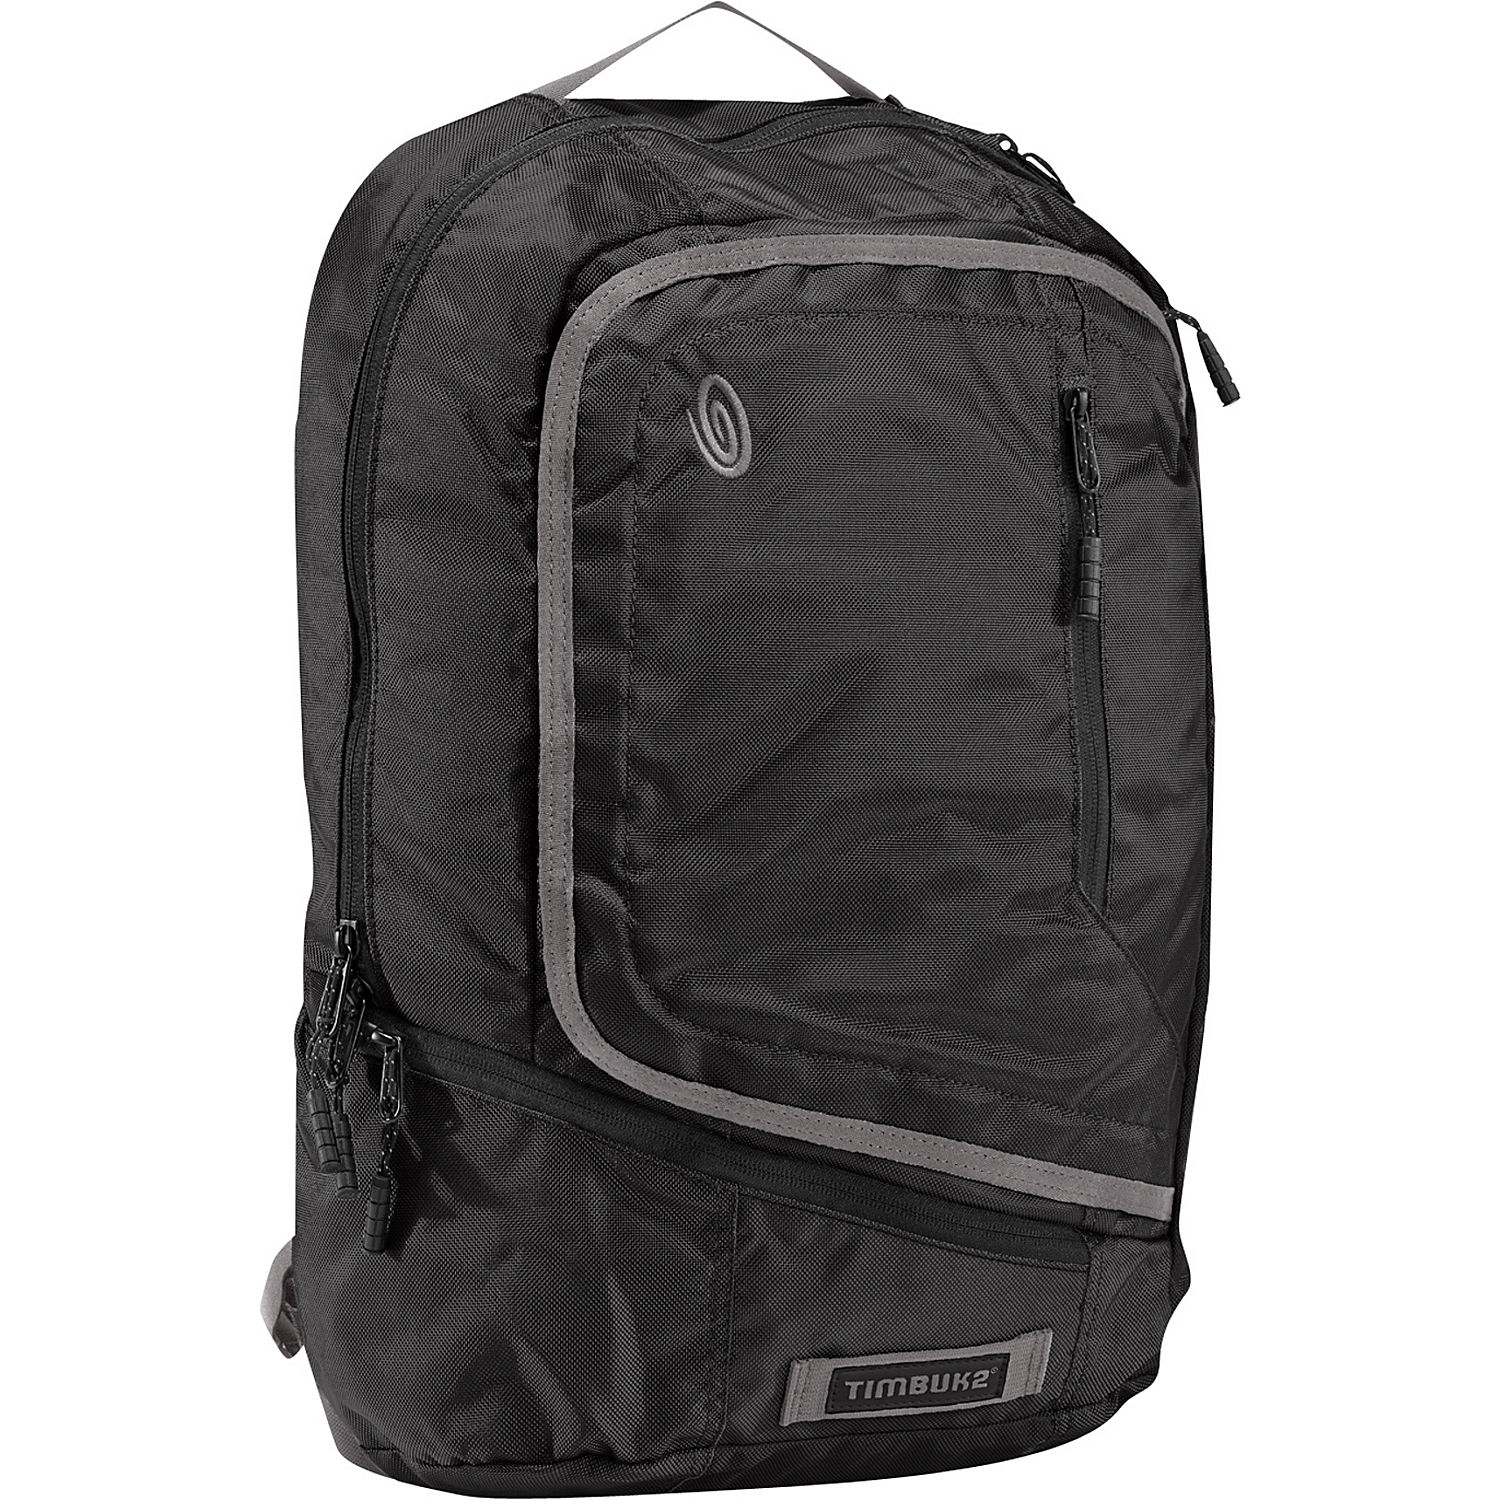 Timbuk2 Q Laptop Backpack Free Shipping Ebags Com